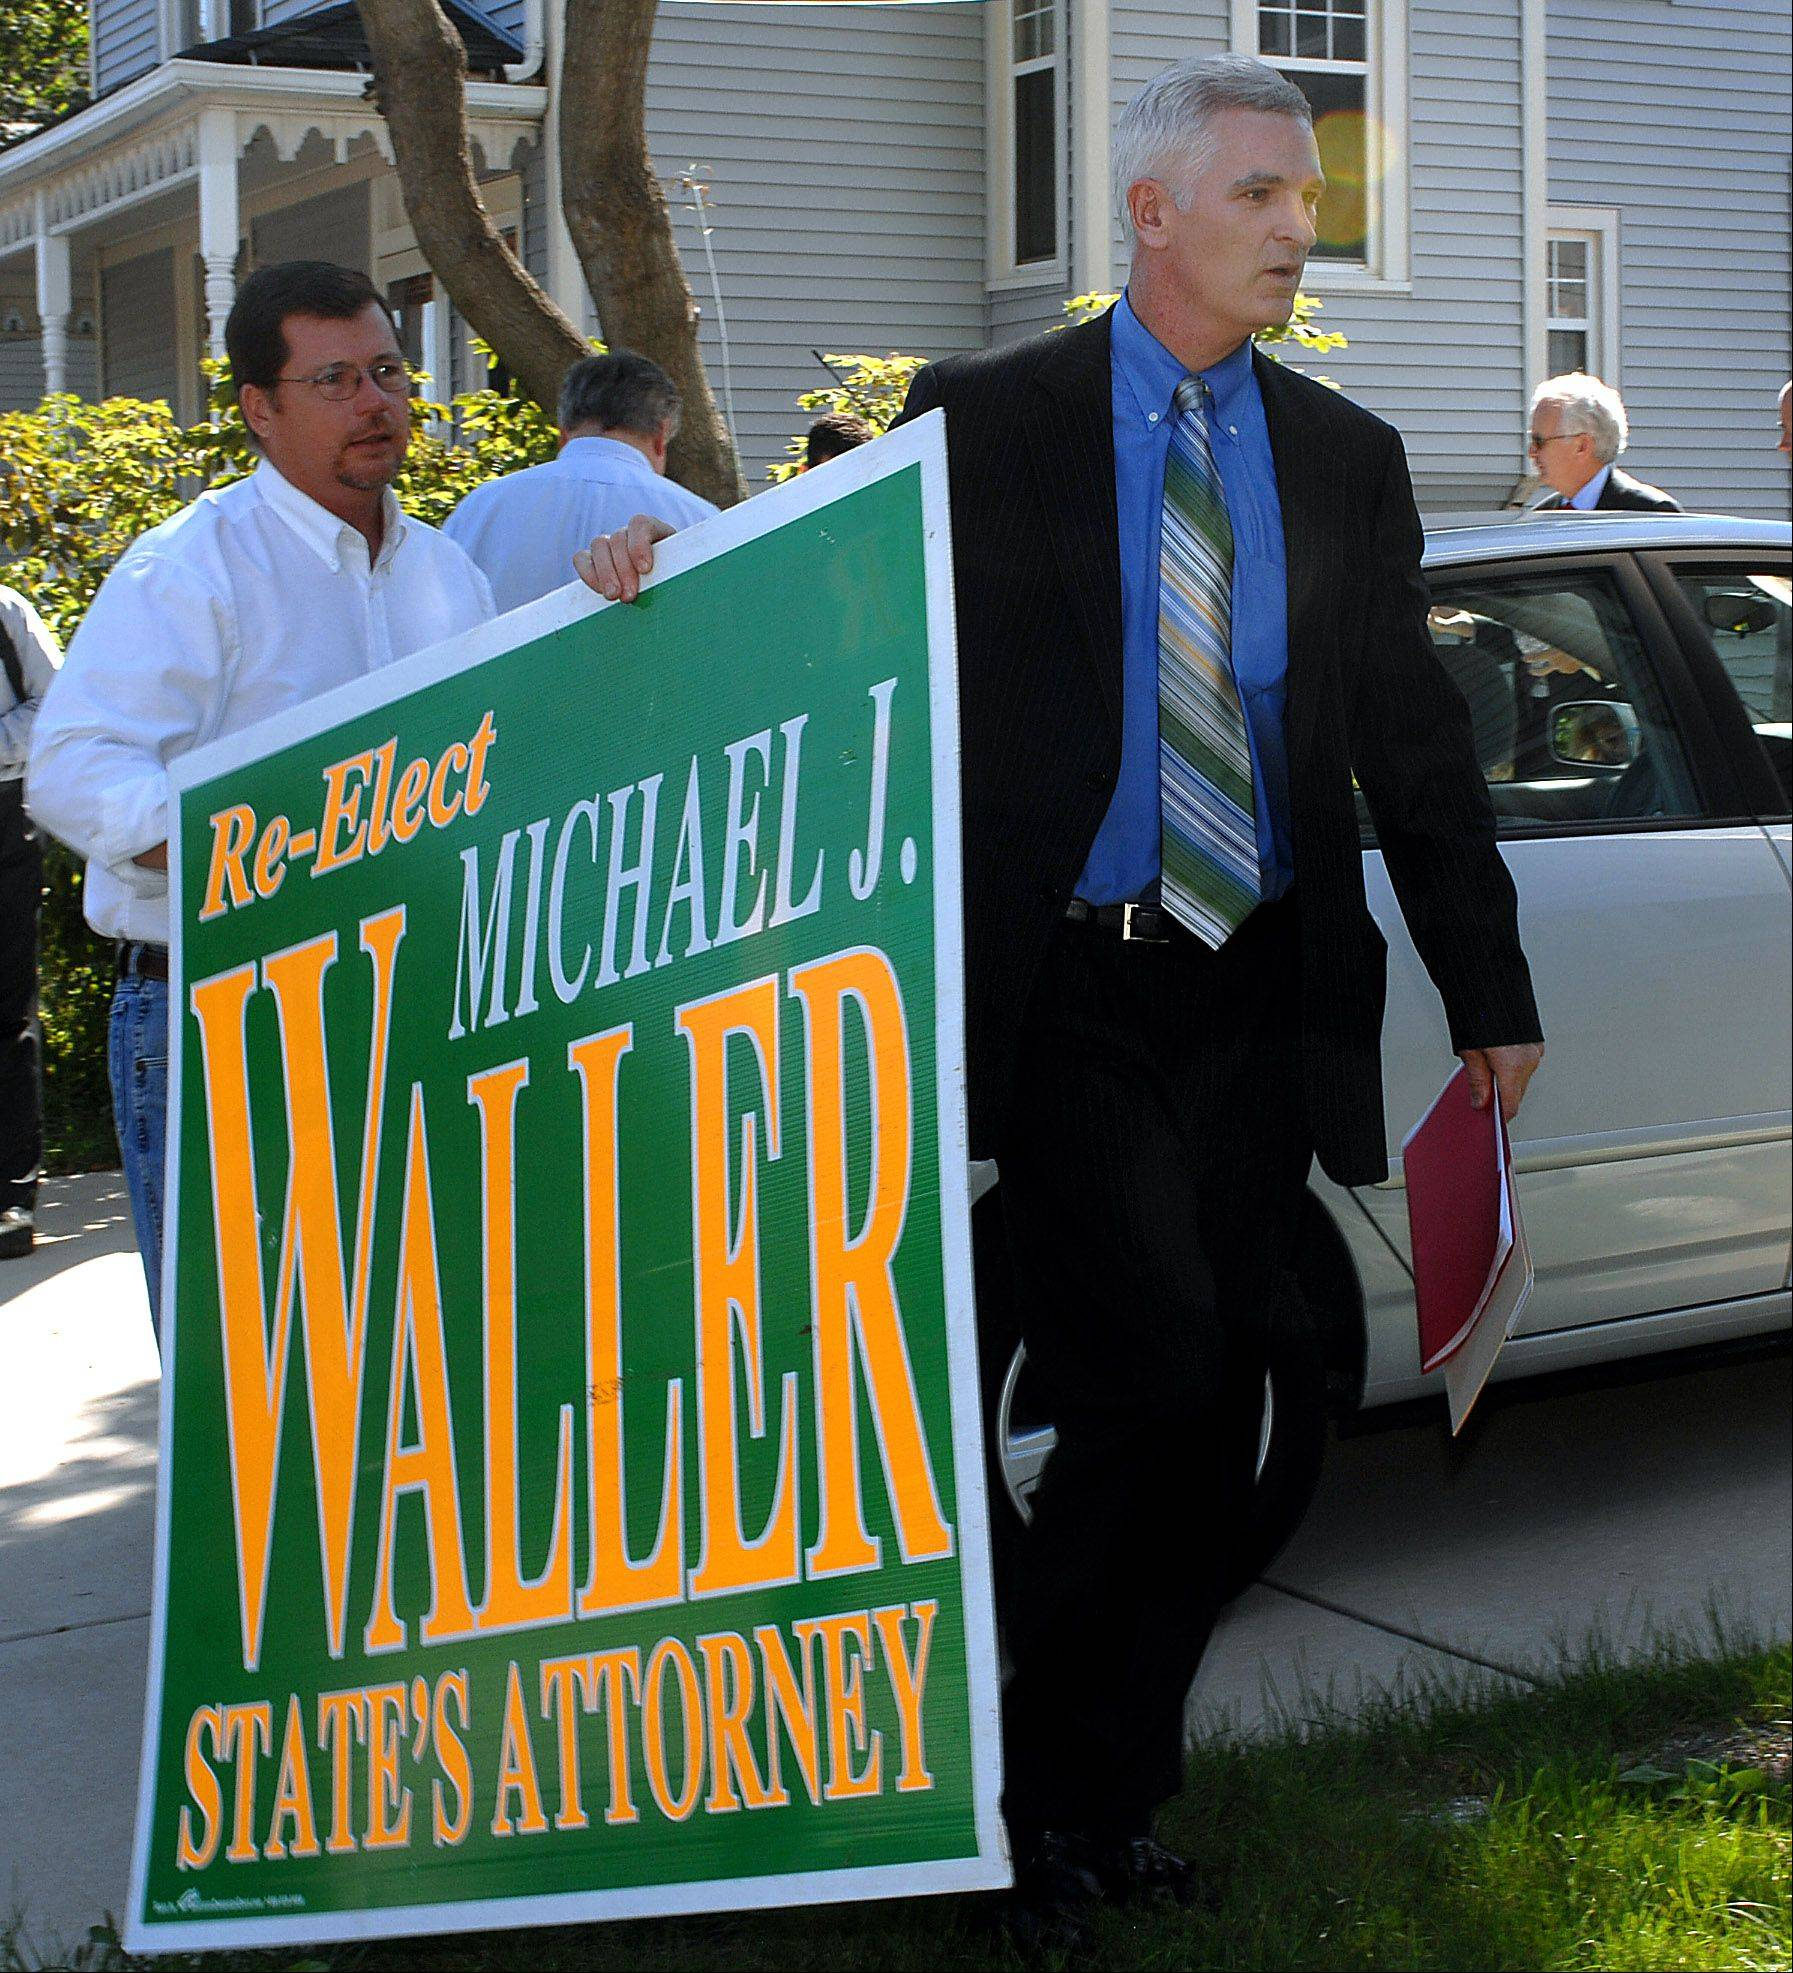 Lake County Sheriff Mark Curran was a Democrat when he endorsed Republican Michael Waller for Lake County state's attorney in 2008. Later that same year Curran became a Republican himself.